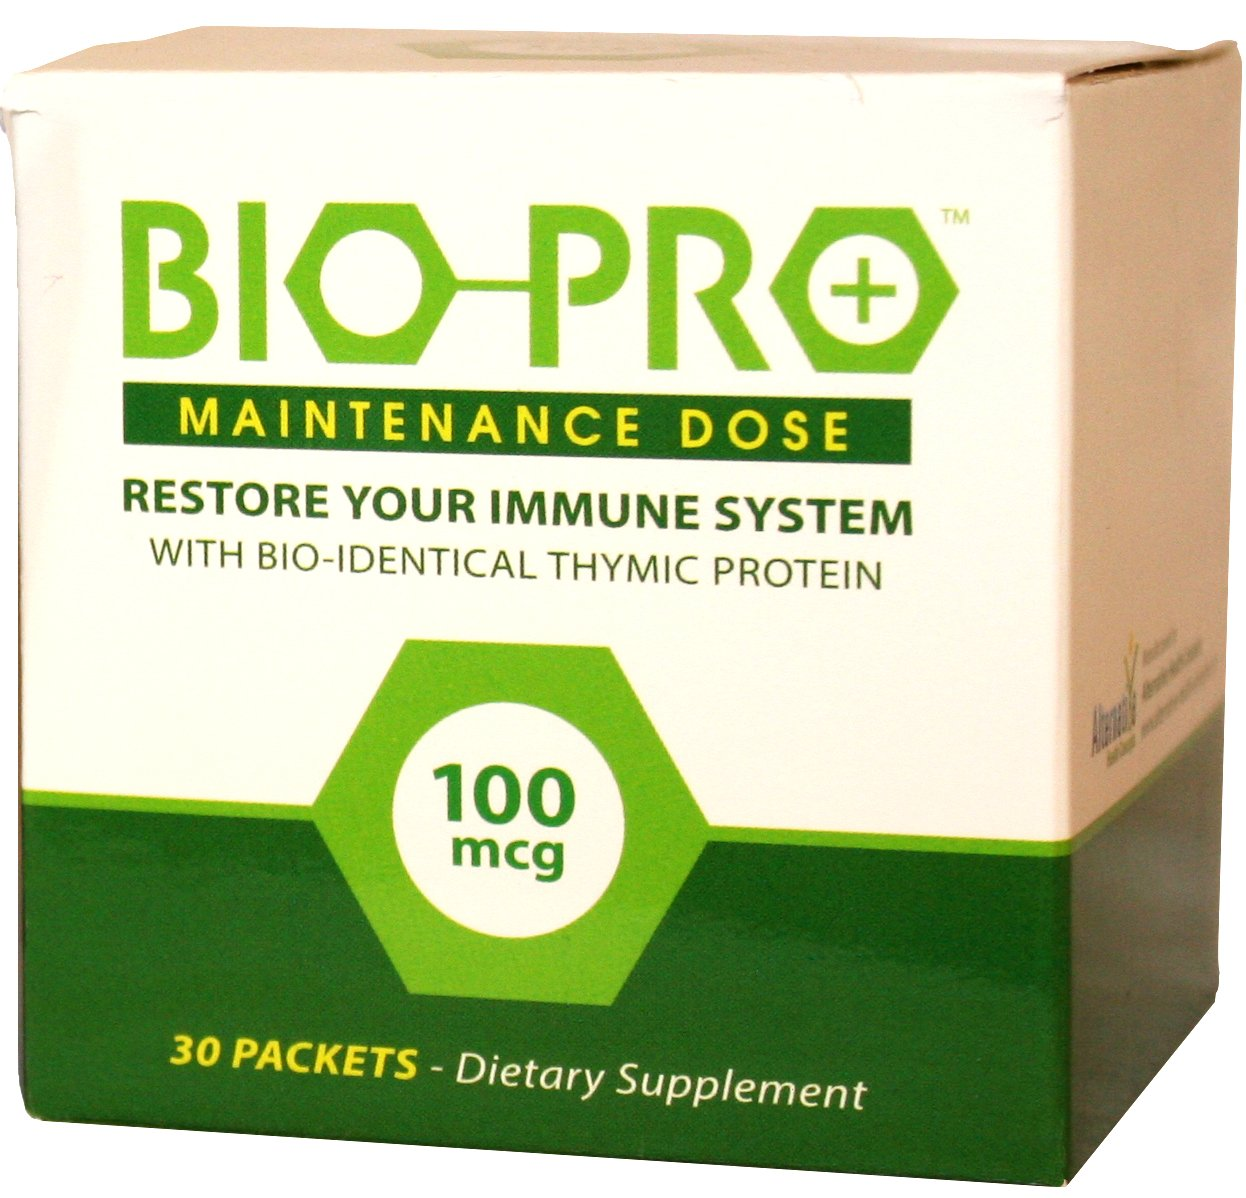 BioPro-Plus Immune Support Supplement with Zinc, Bioidentical Thymic Proteins Immune System Booster (100mcg Maintenance Dose) Nutritional Supplements, All Natural Ingredients